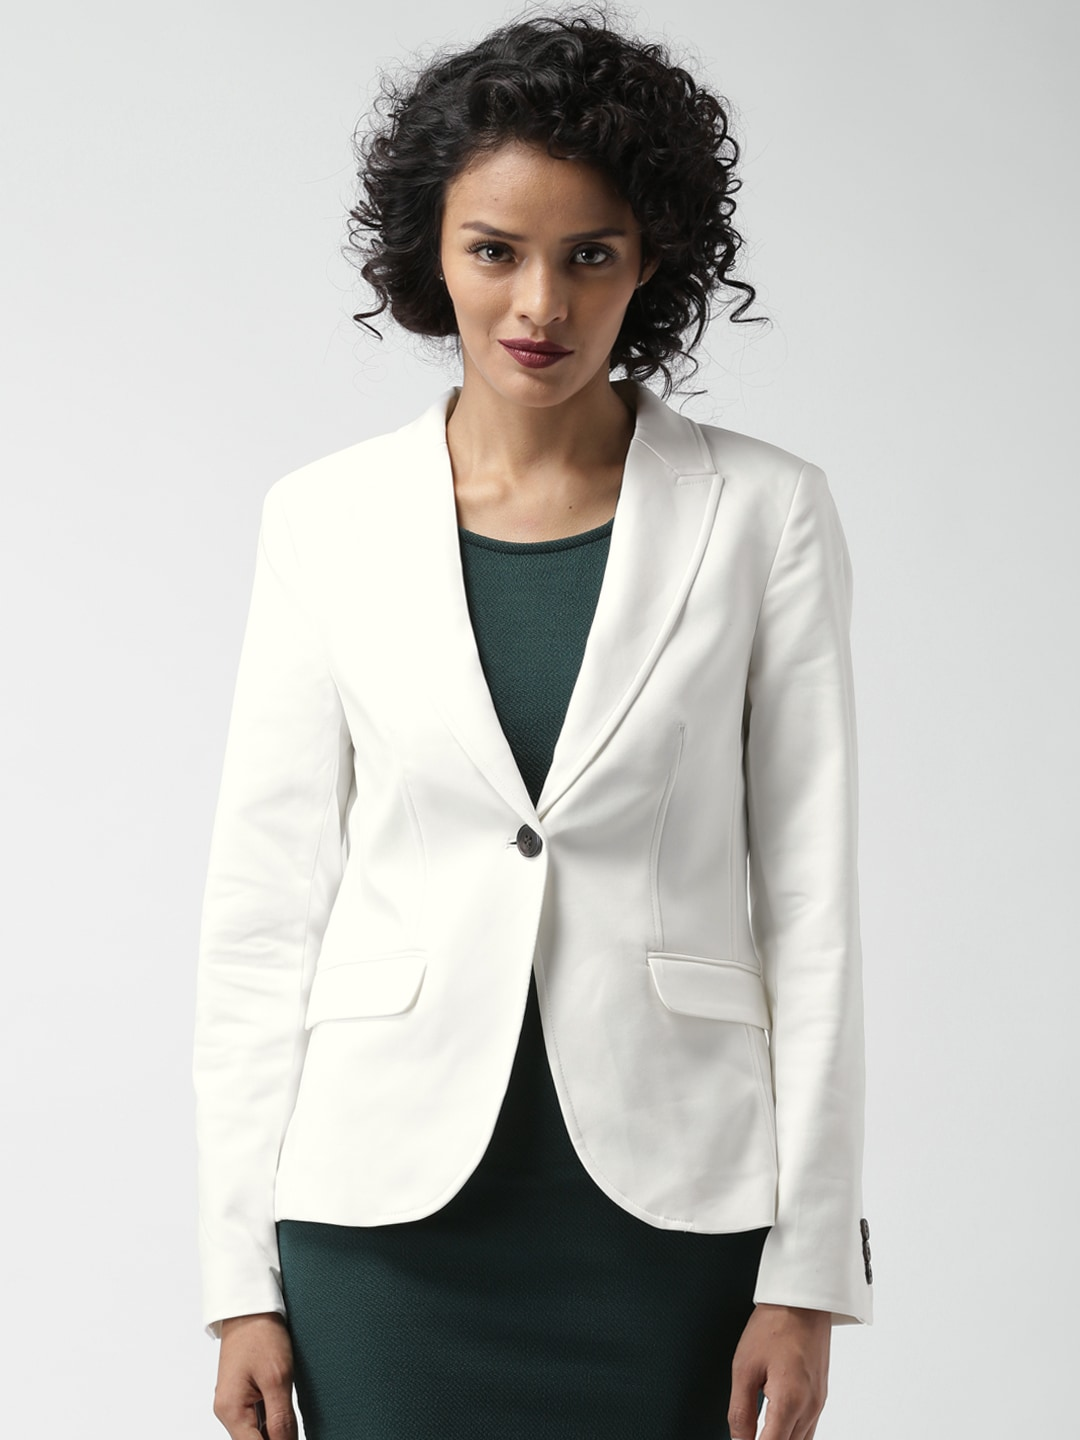 e08f908c0bd7 Forever 21 52289087-cream Off White Jacket - Best Price in India ...